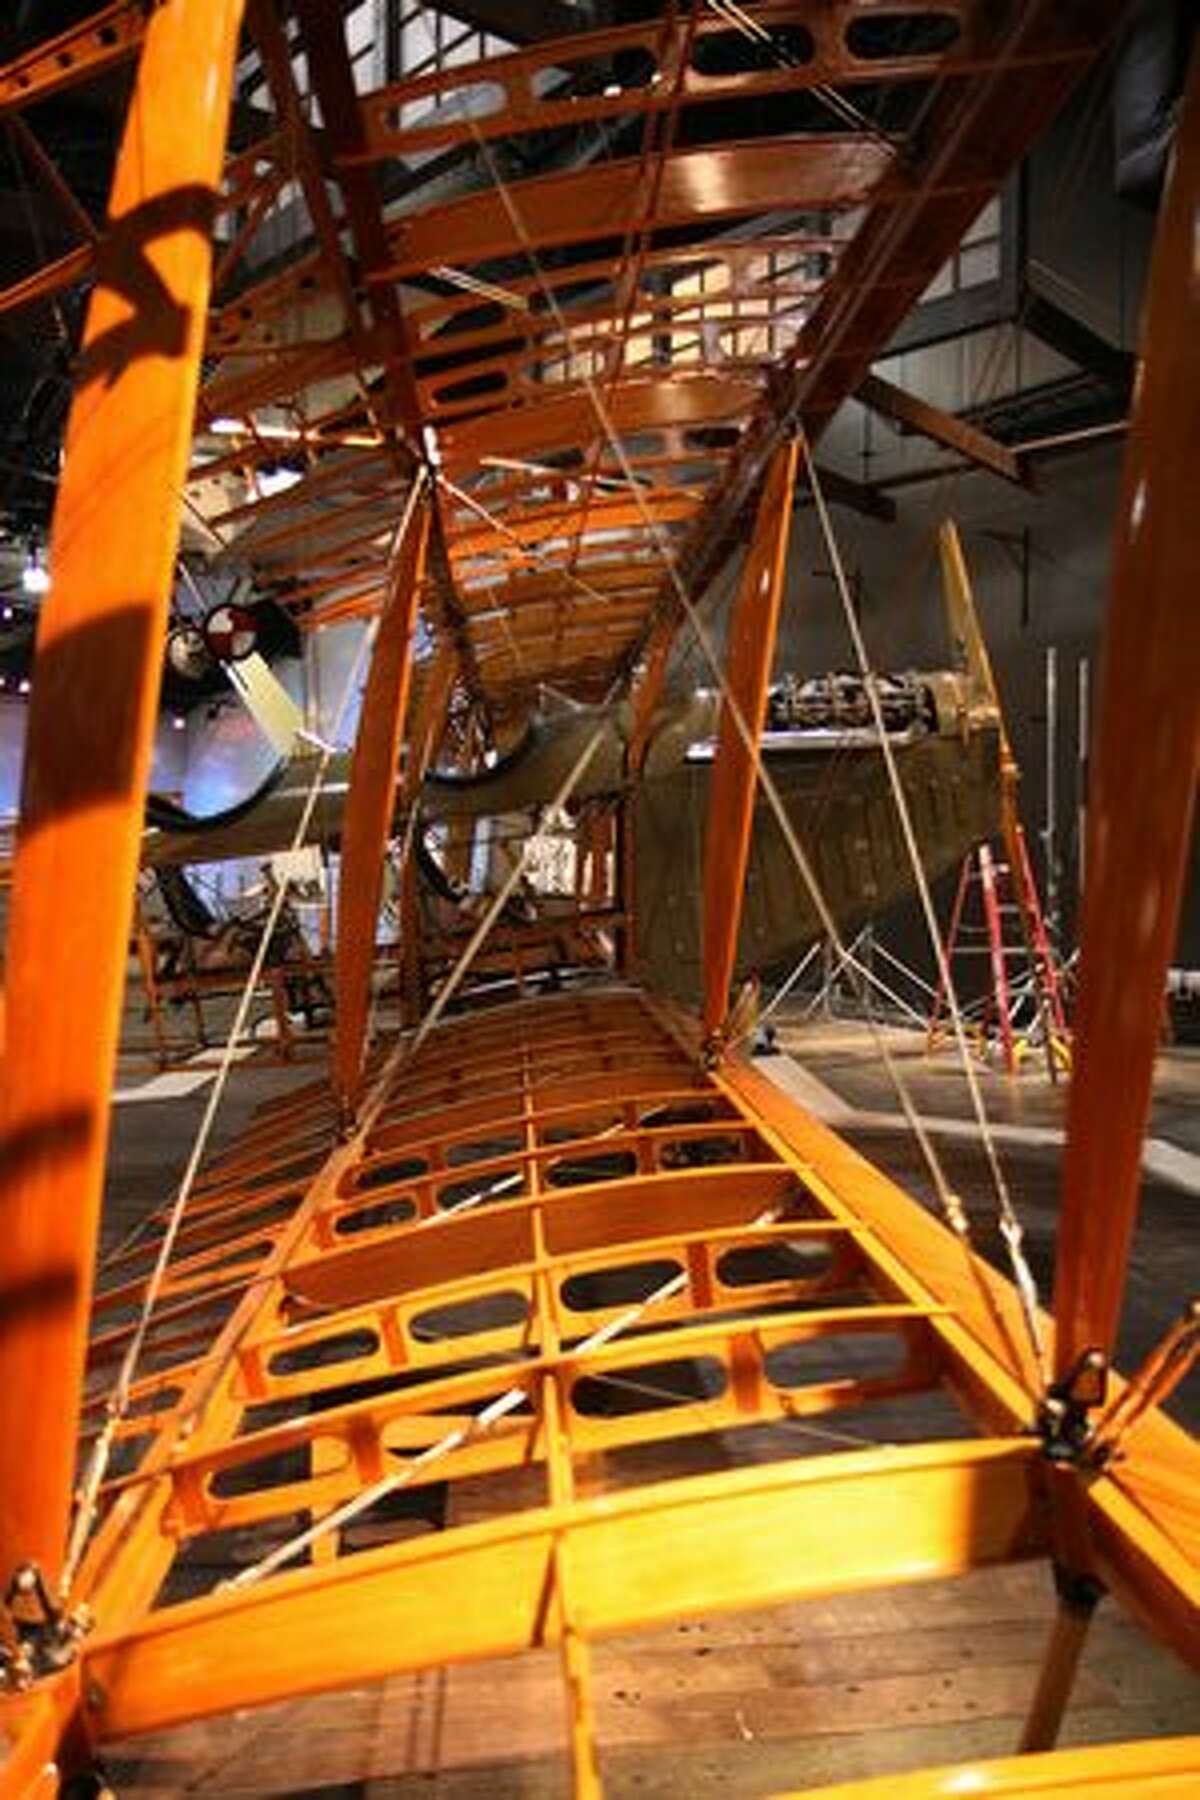 The Seattle Museum of Flight's Curtiss JN-4D Jenny with its wings reattached.